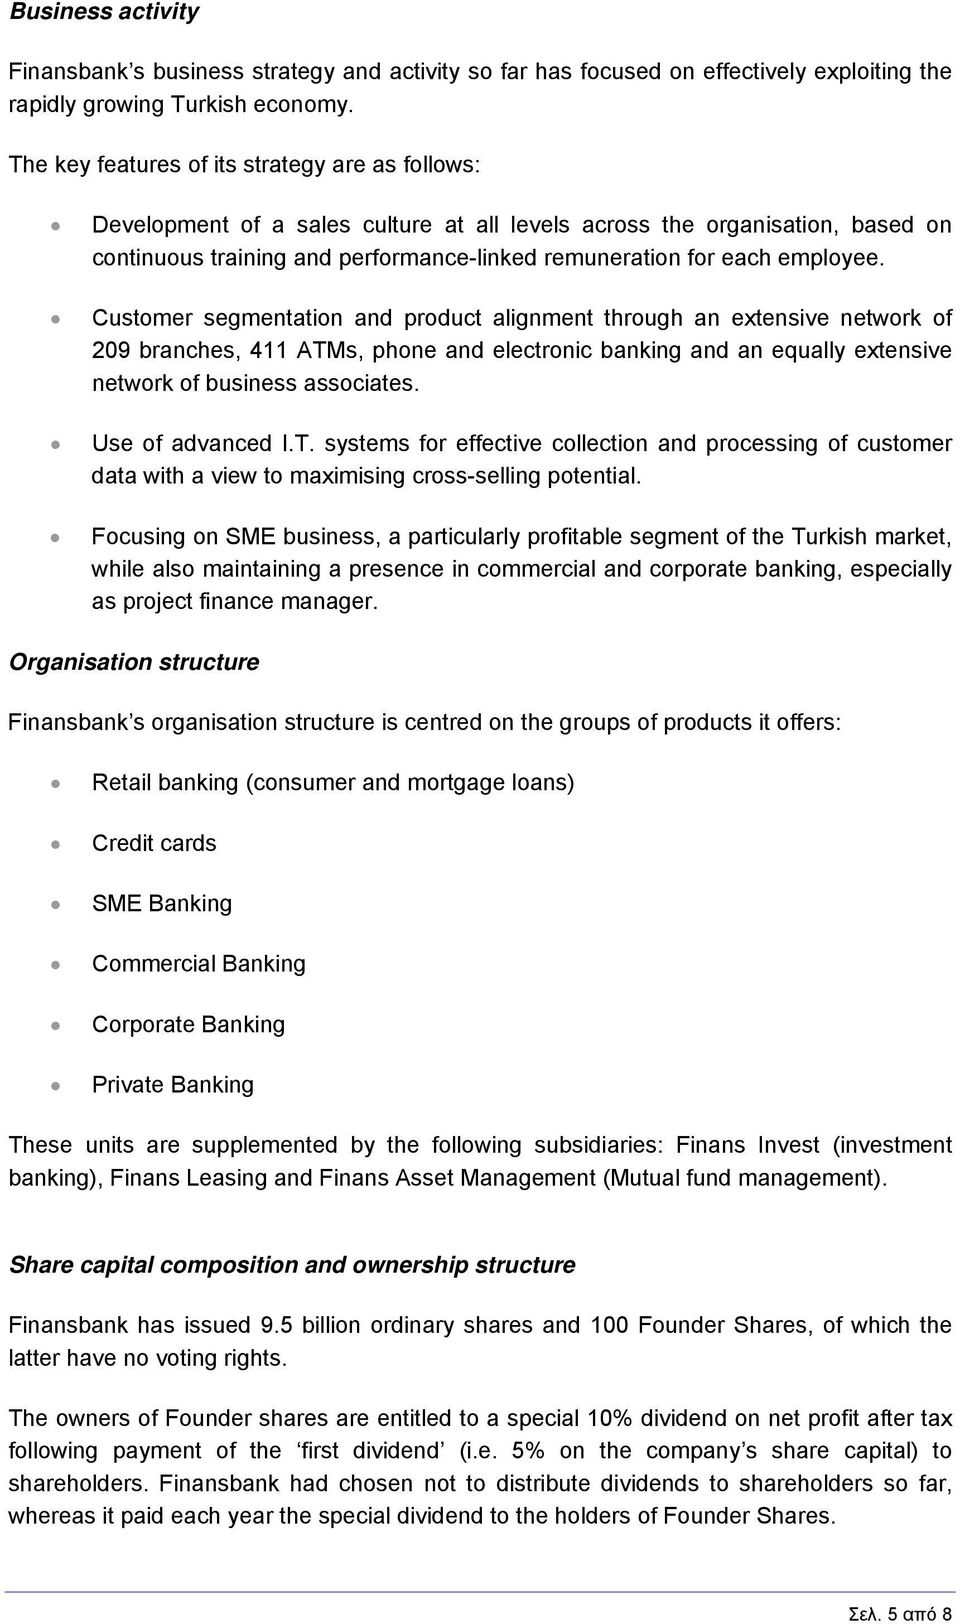 employee. Customer segmentation and product alignment through an extensive network of 209 branches, 411 ΑΤΜs, phone and electronic banking and an equally extensive network of business associates.